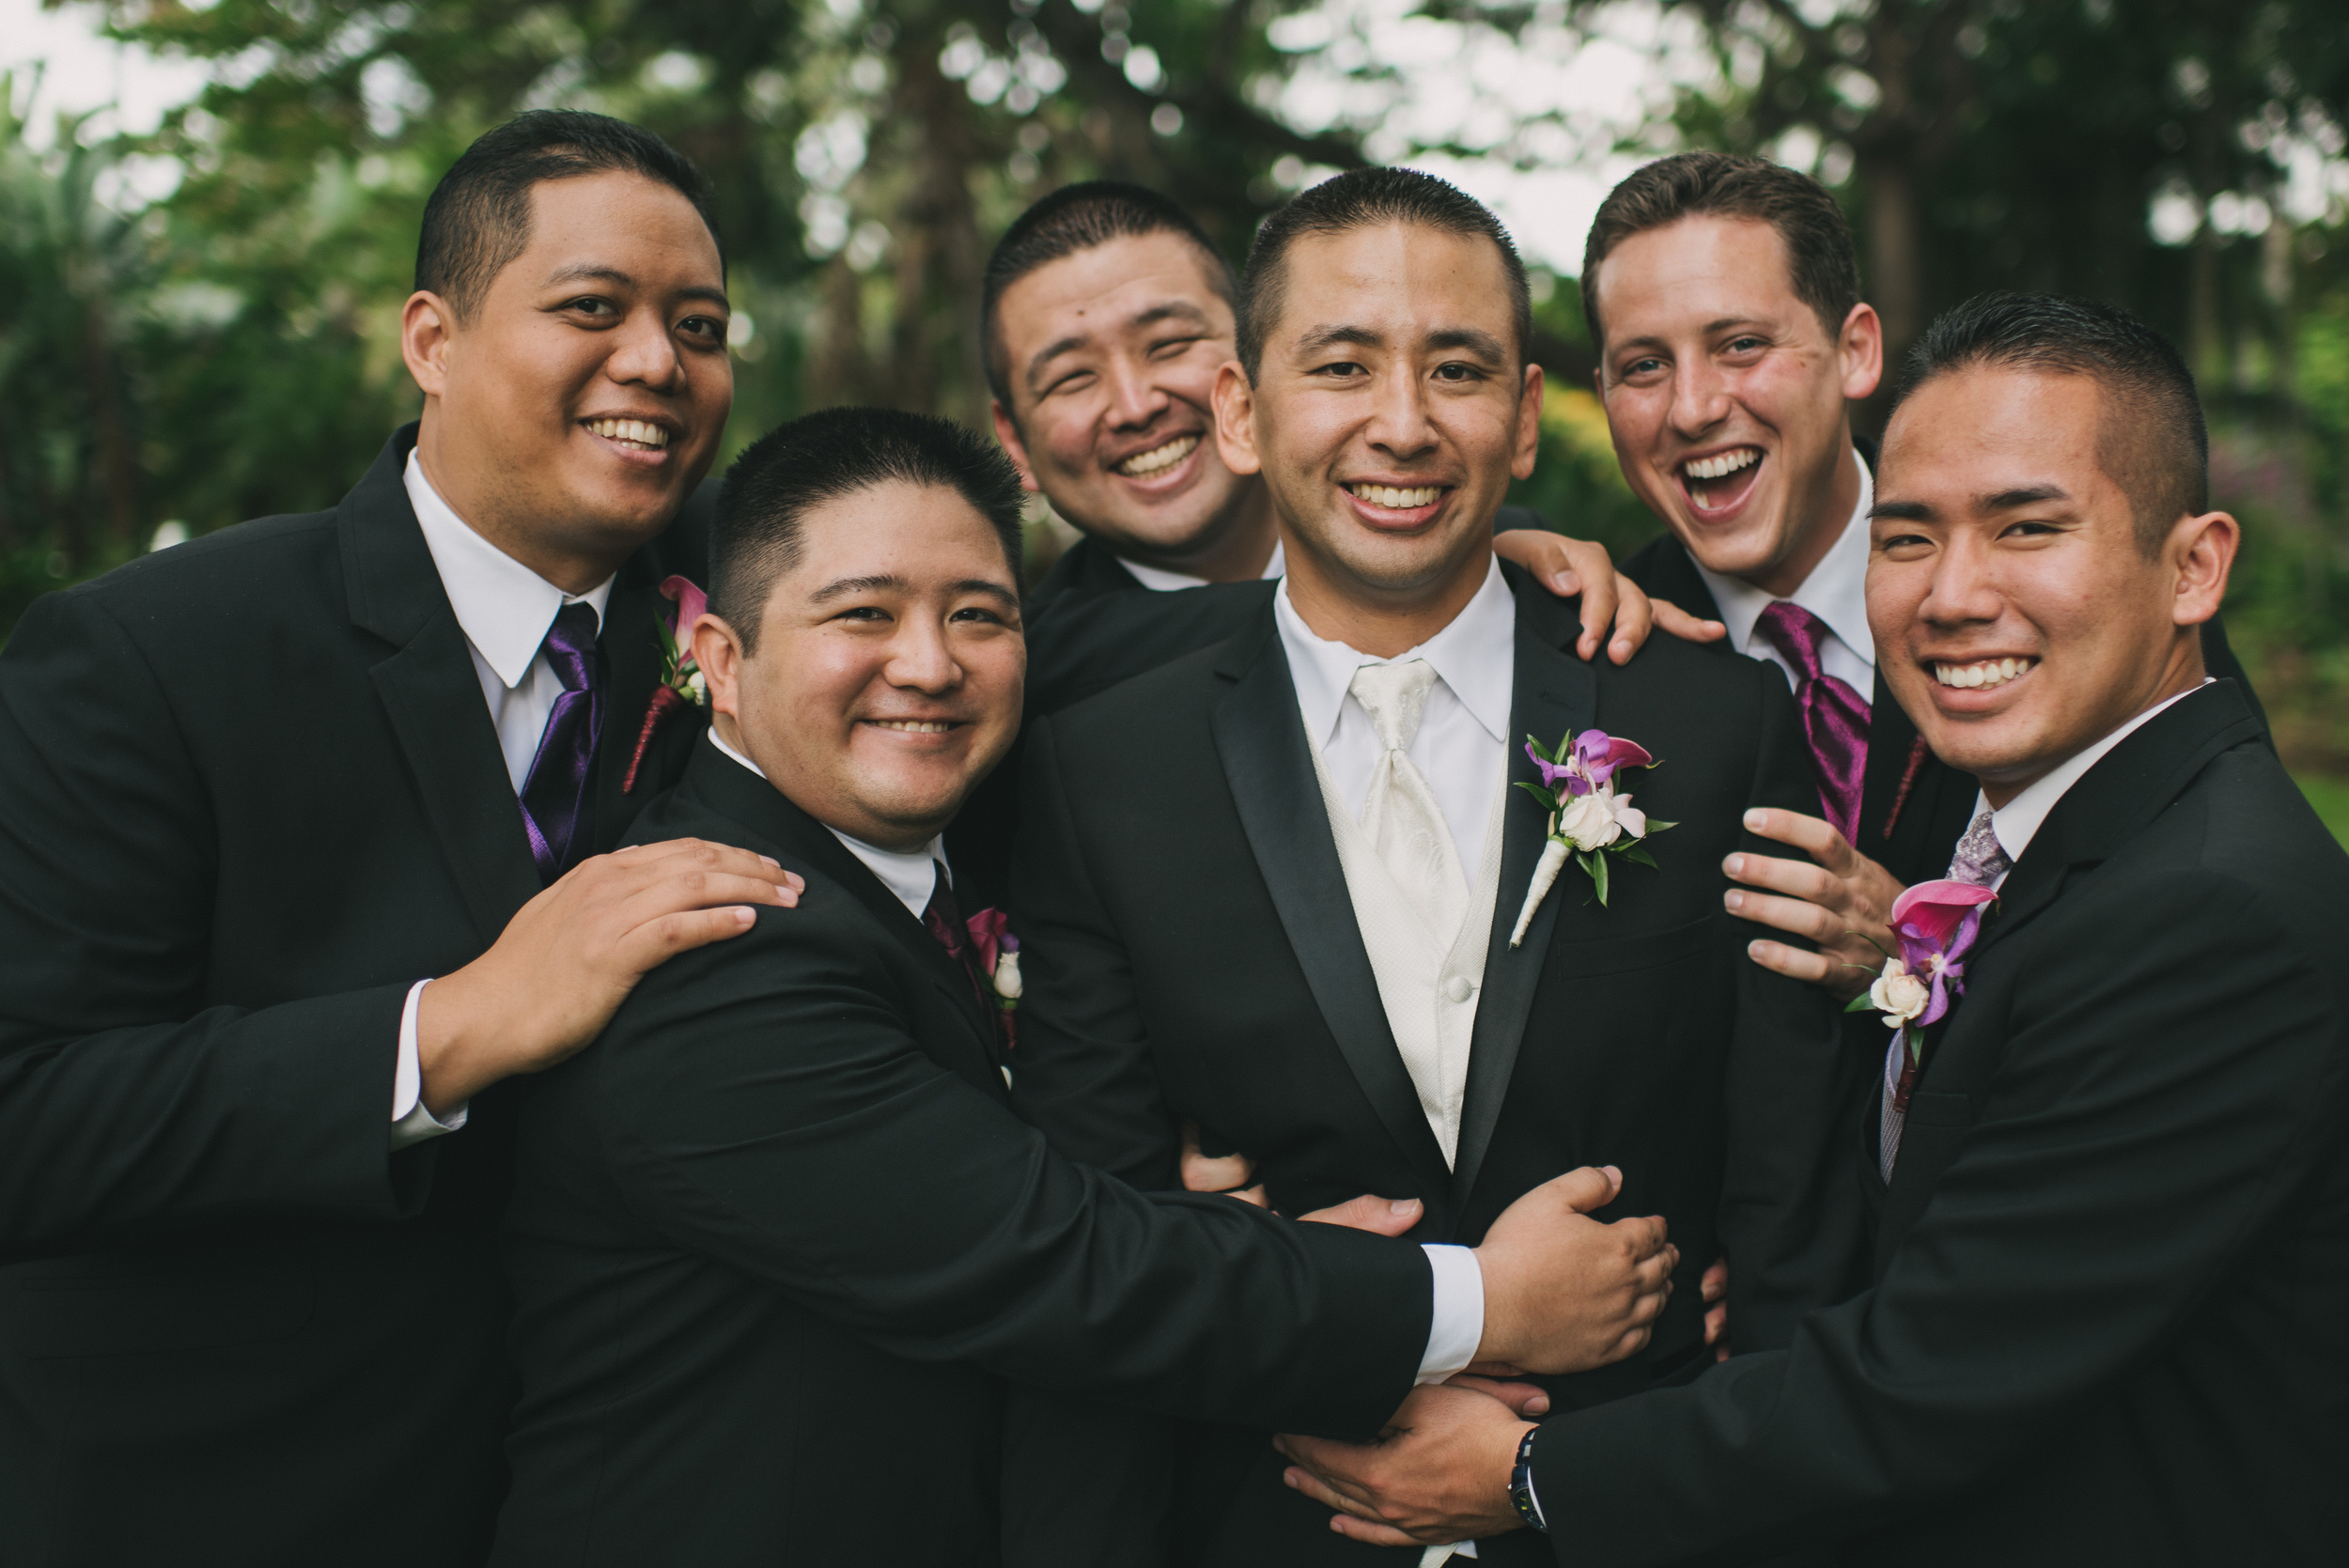 36-hale-koa-hotel-wedding-ceremony.jpg